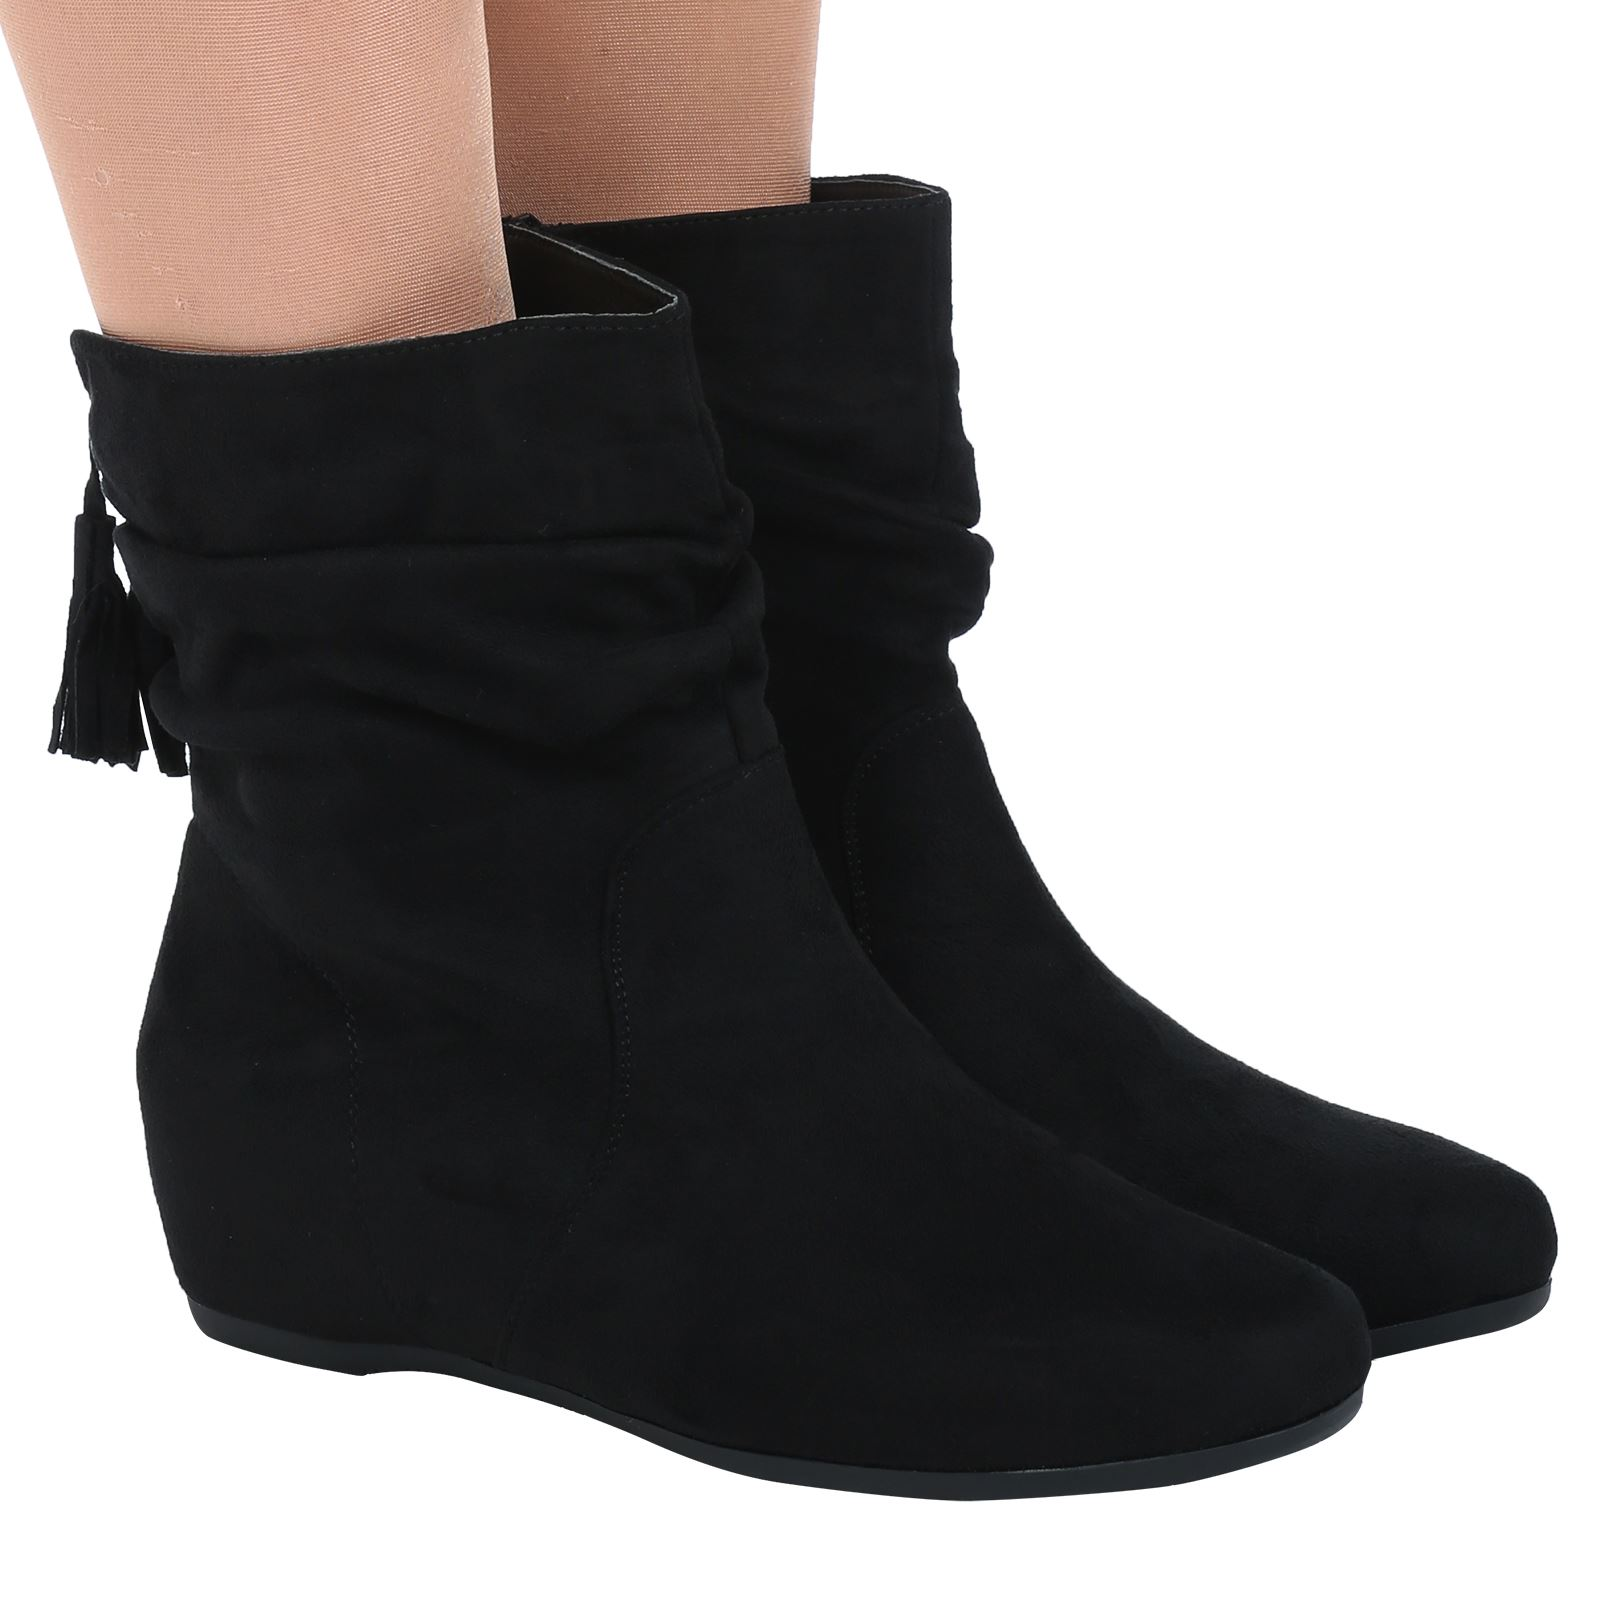 WOMENS SHOES LADIES FLAT SLOUCH LOW HEEL WEDGE ANKLE BOOTS PIXIE CASUAL SIZE NEW | EBay